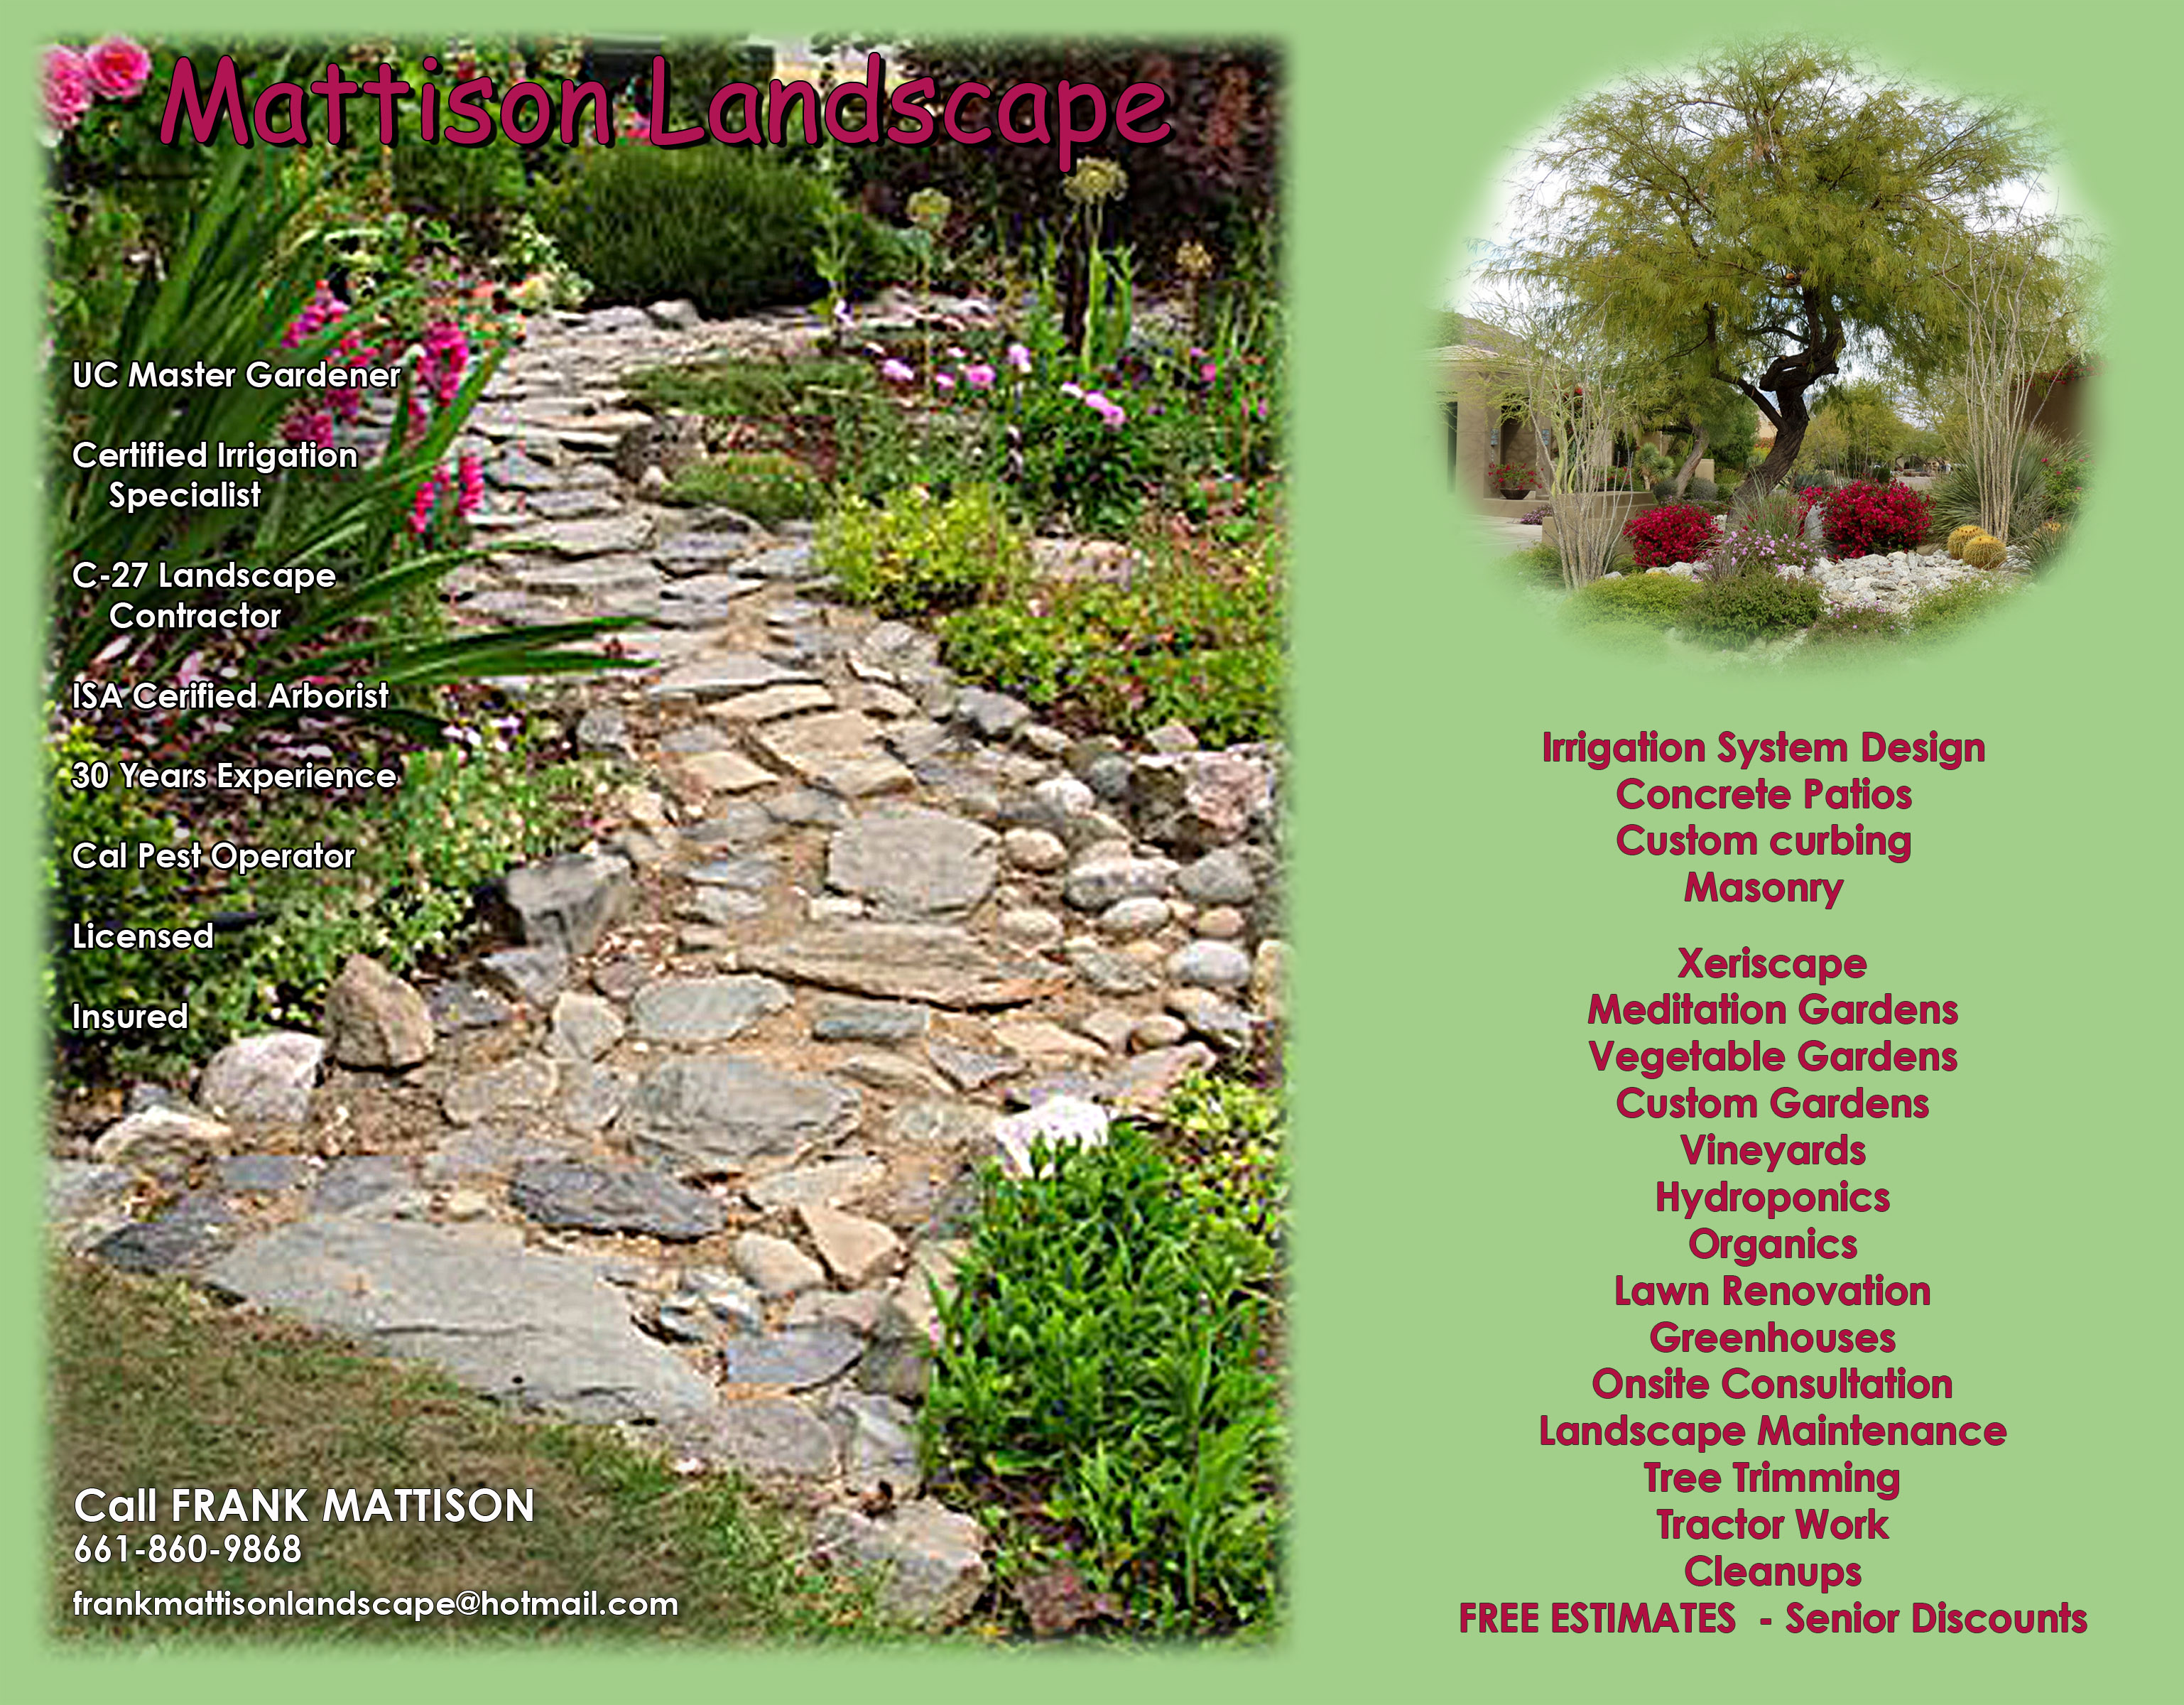 landscaping services in lancaster ca frank mattison landscape top rated tree service contractors in lancaster